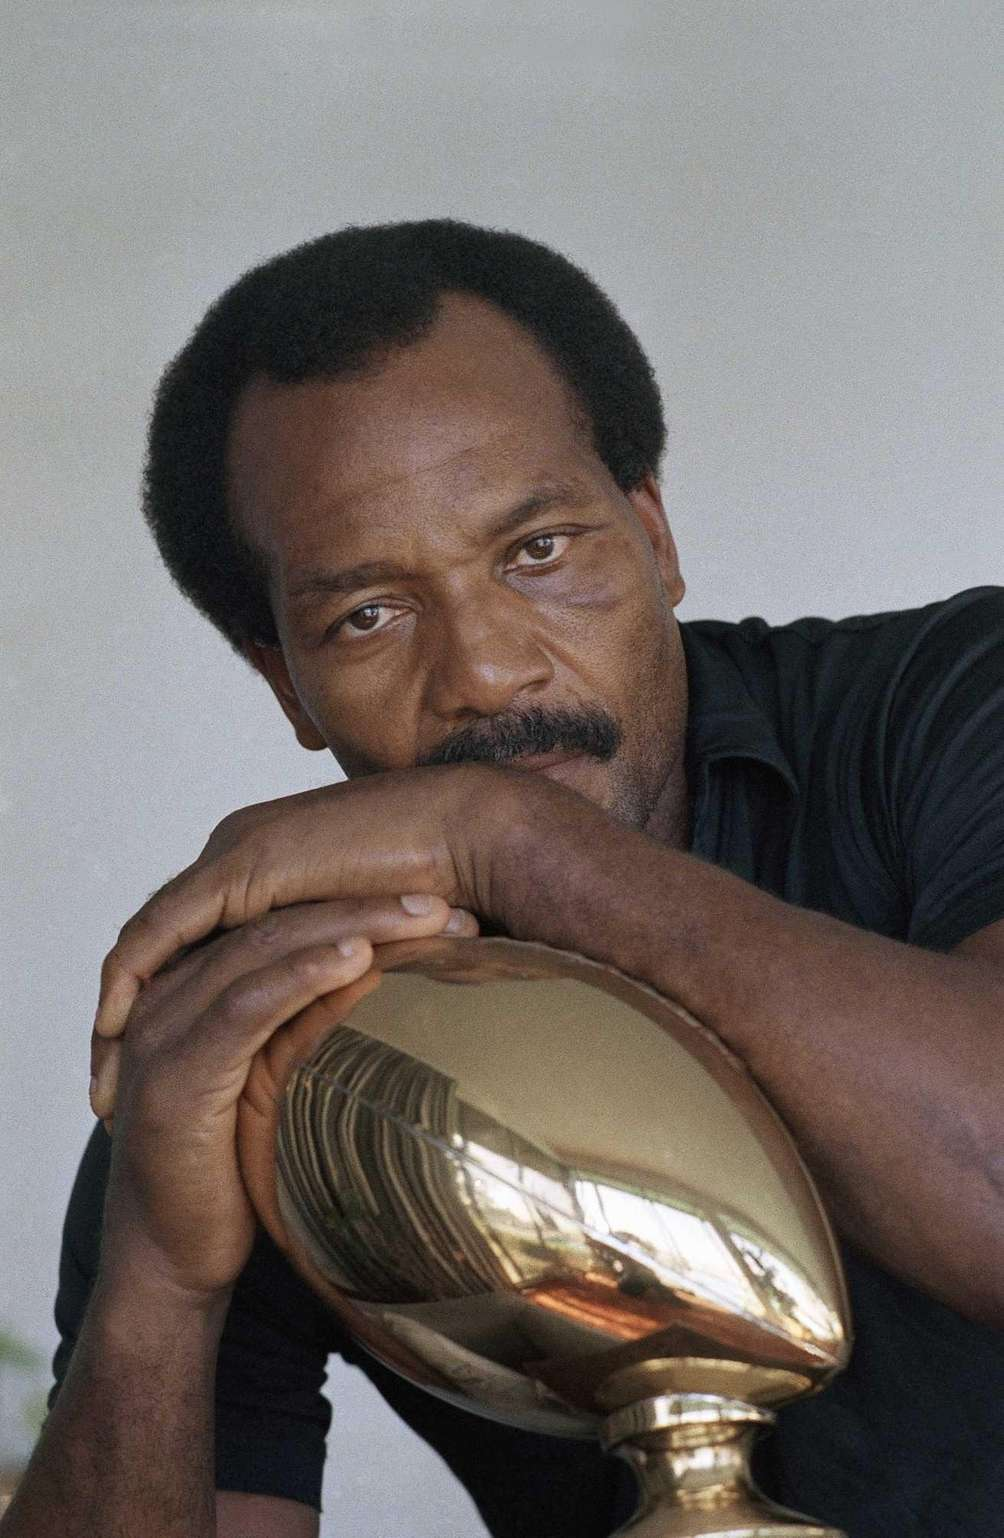 Football star turned actor Jim Brown grew up